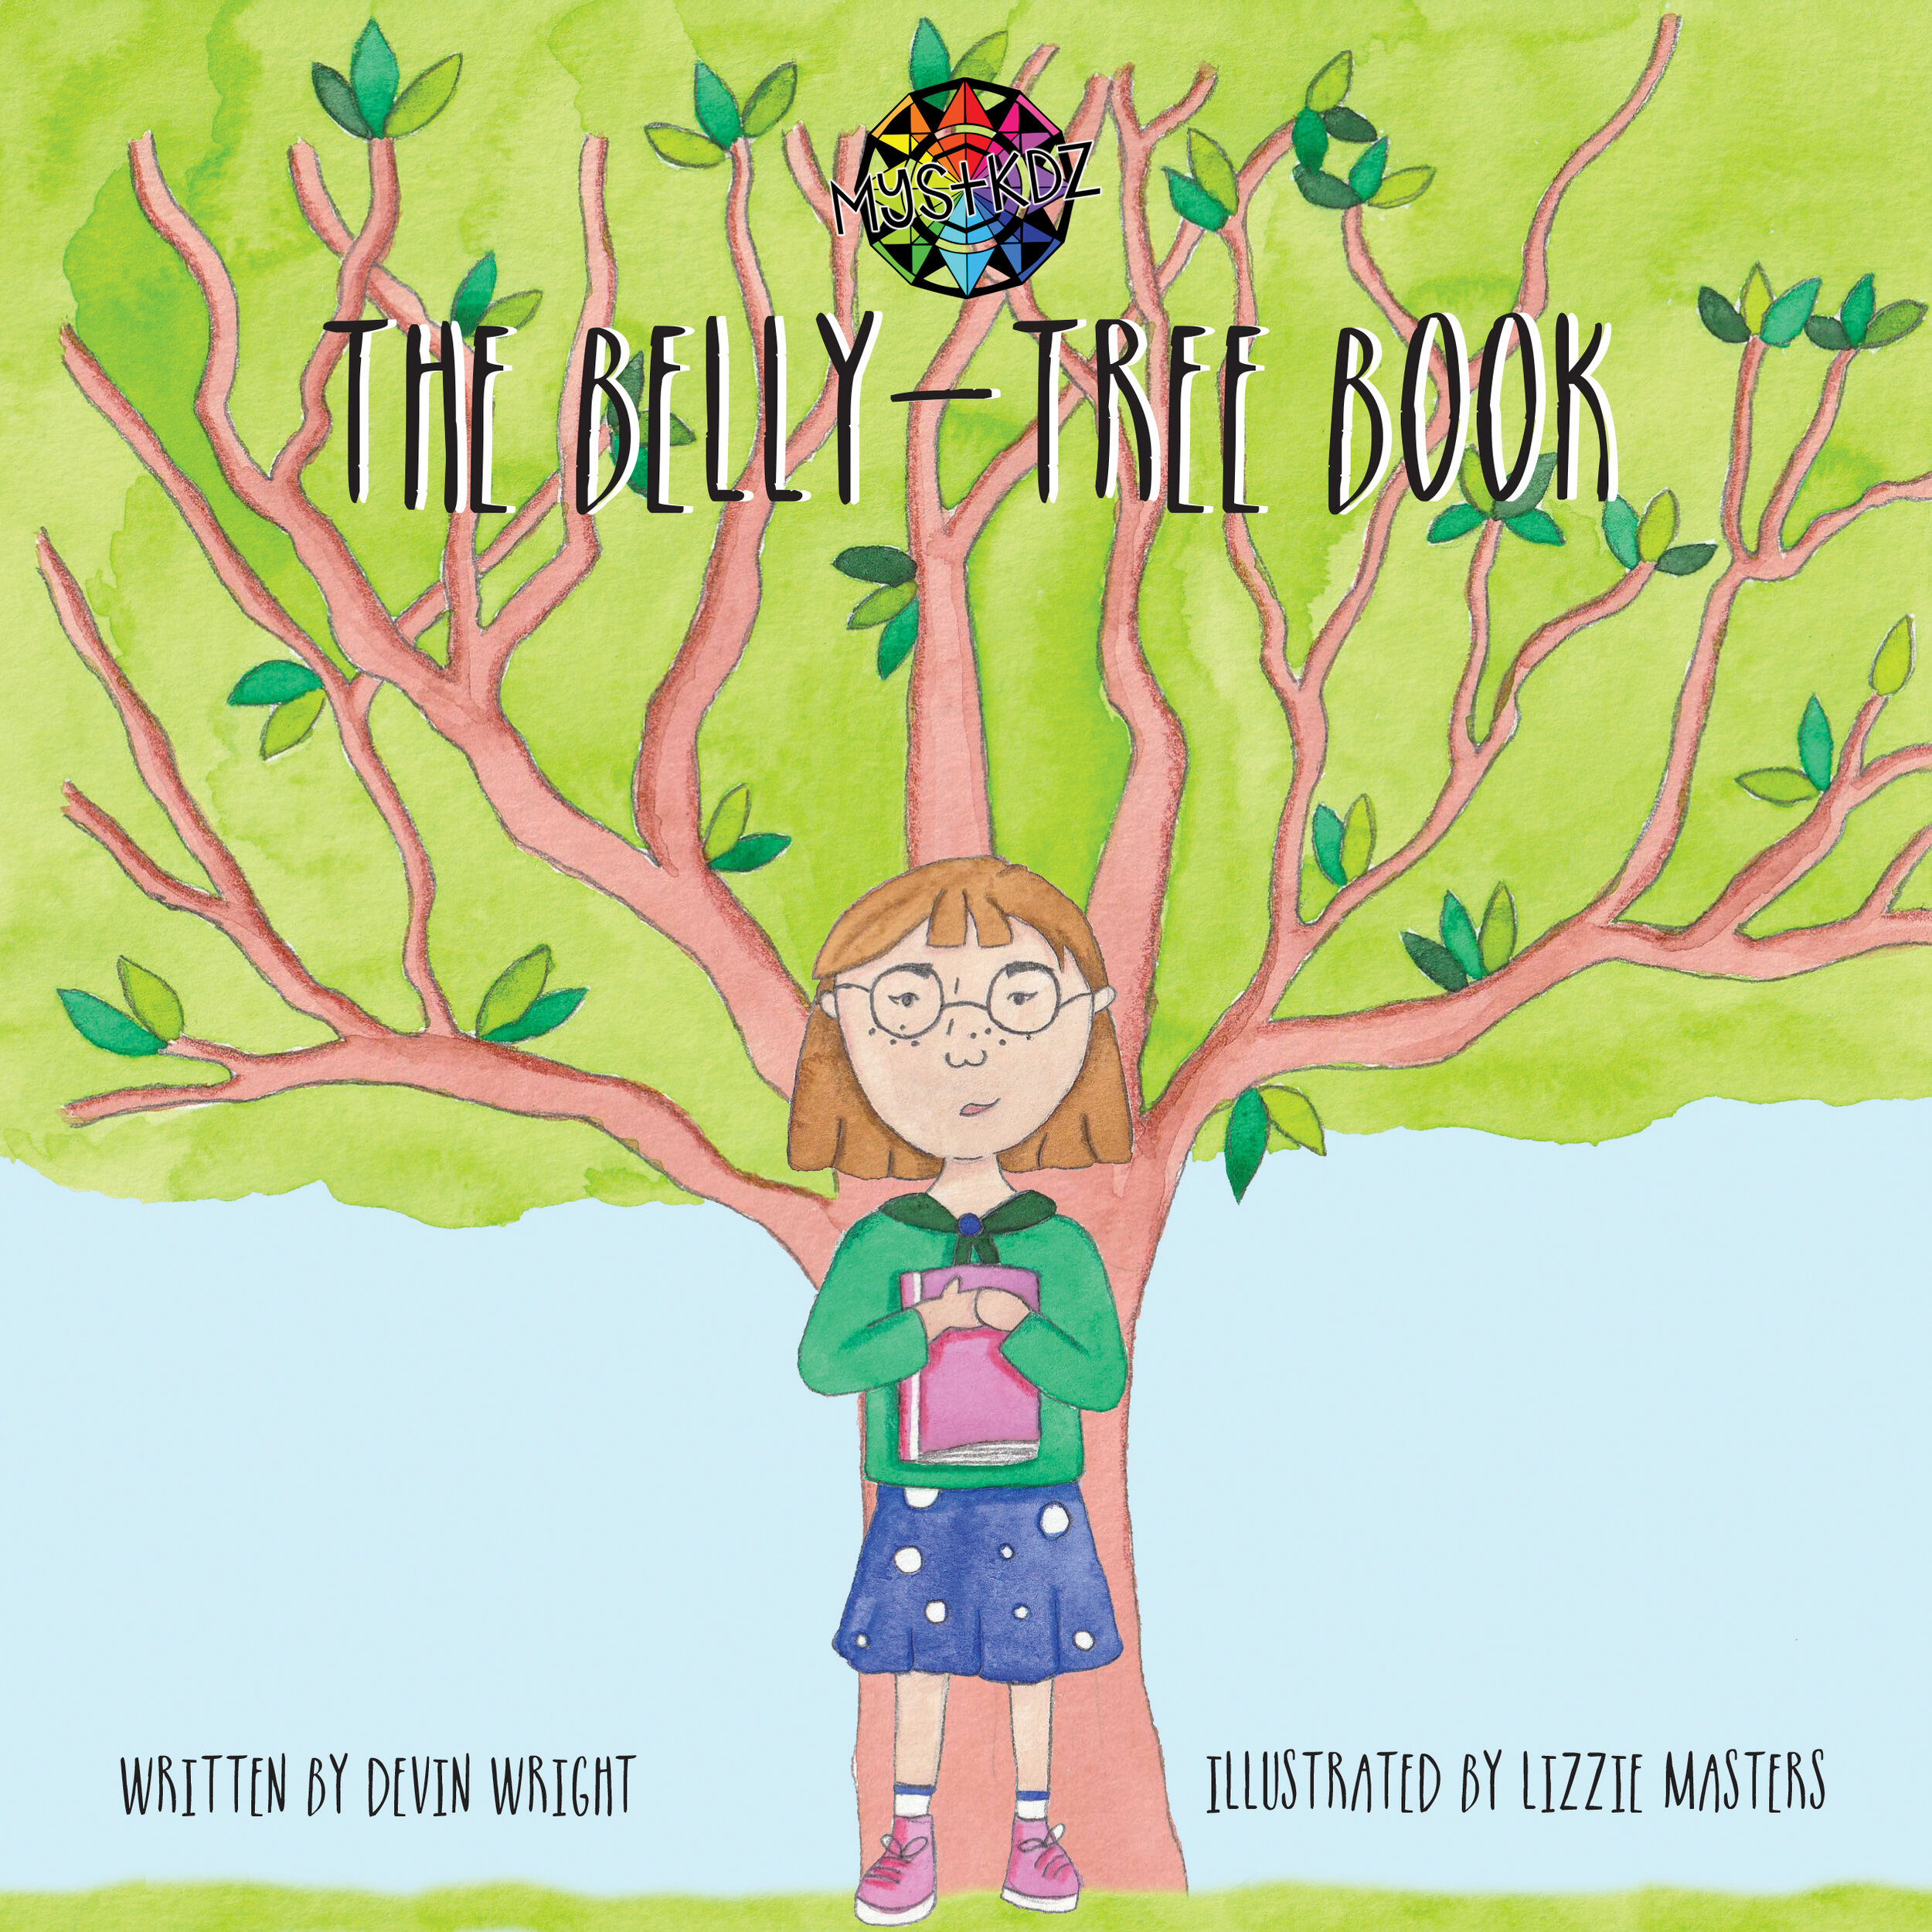 The Belly-Tree Book_frontcover_kindle.jpg